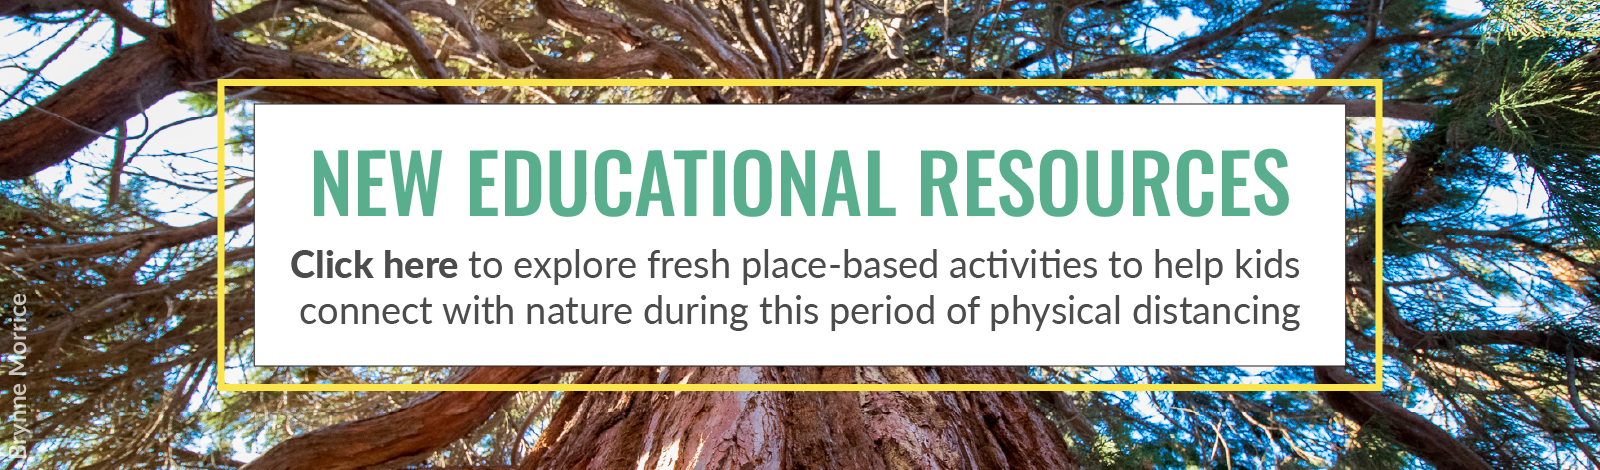 Explore place-based educational activities to connect your kids with nature